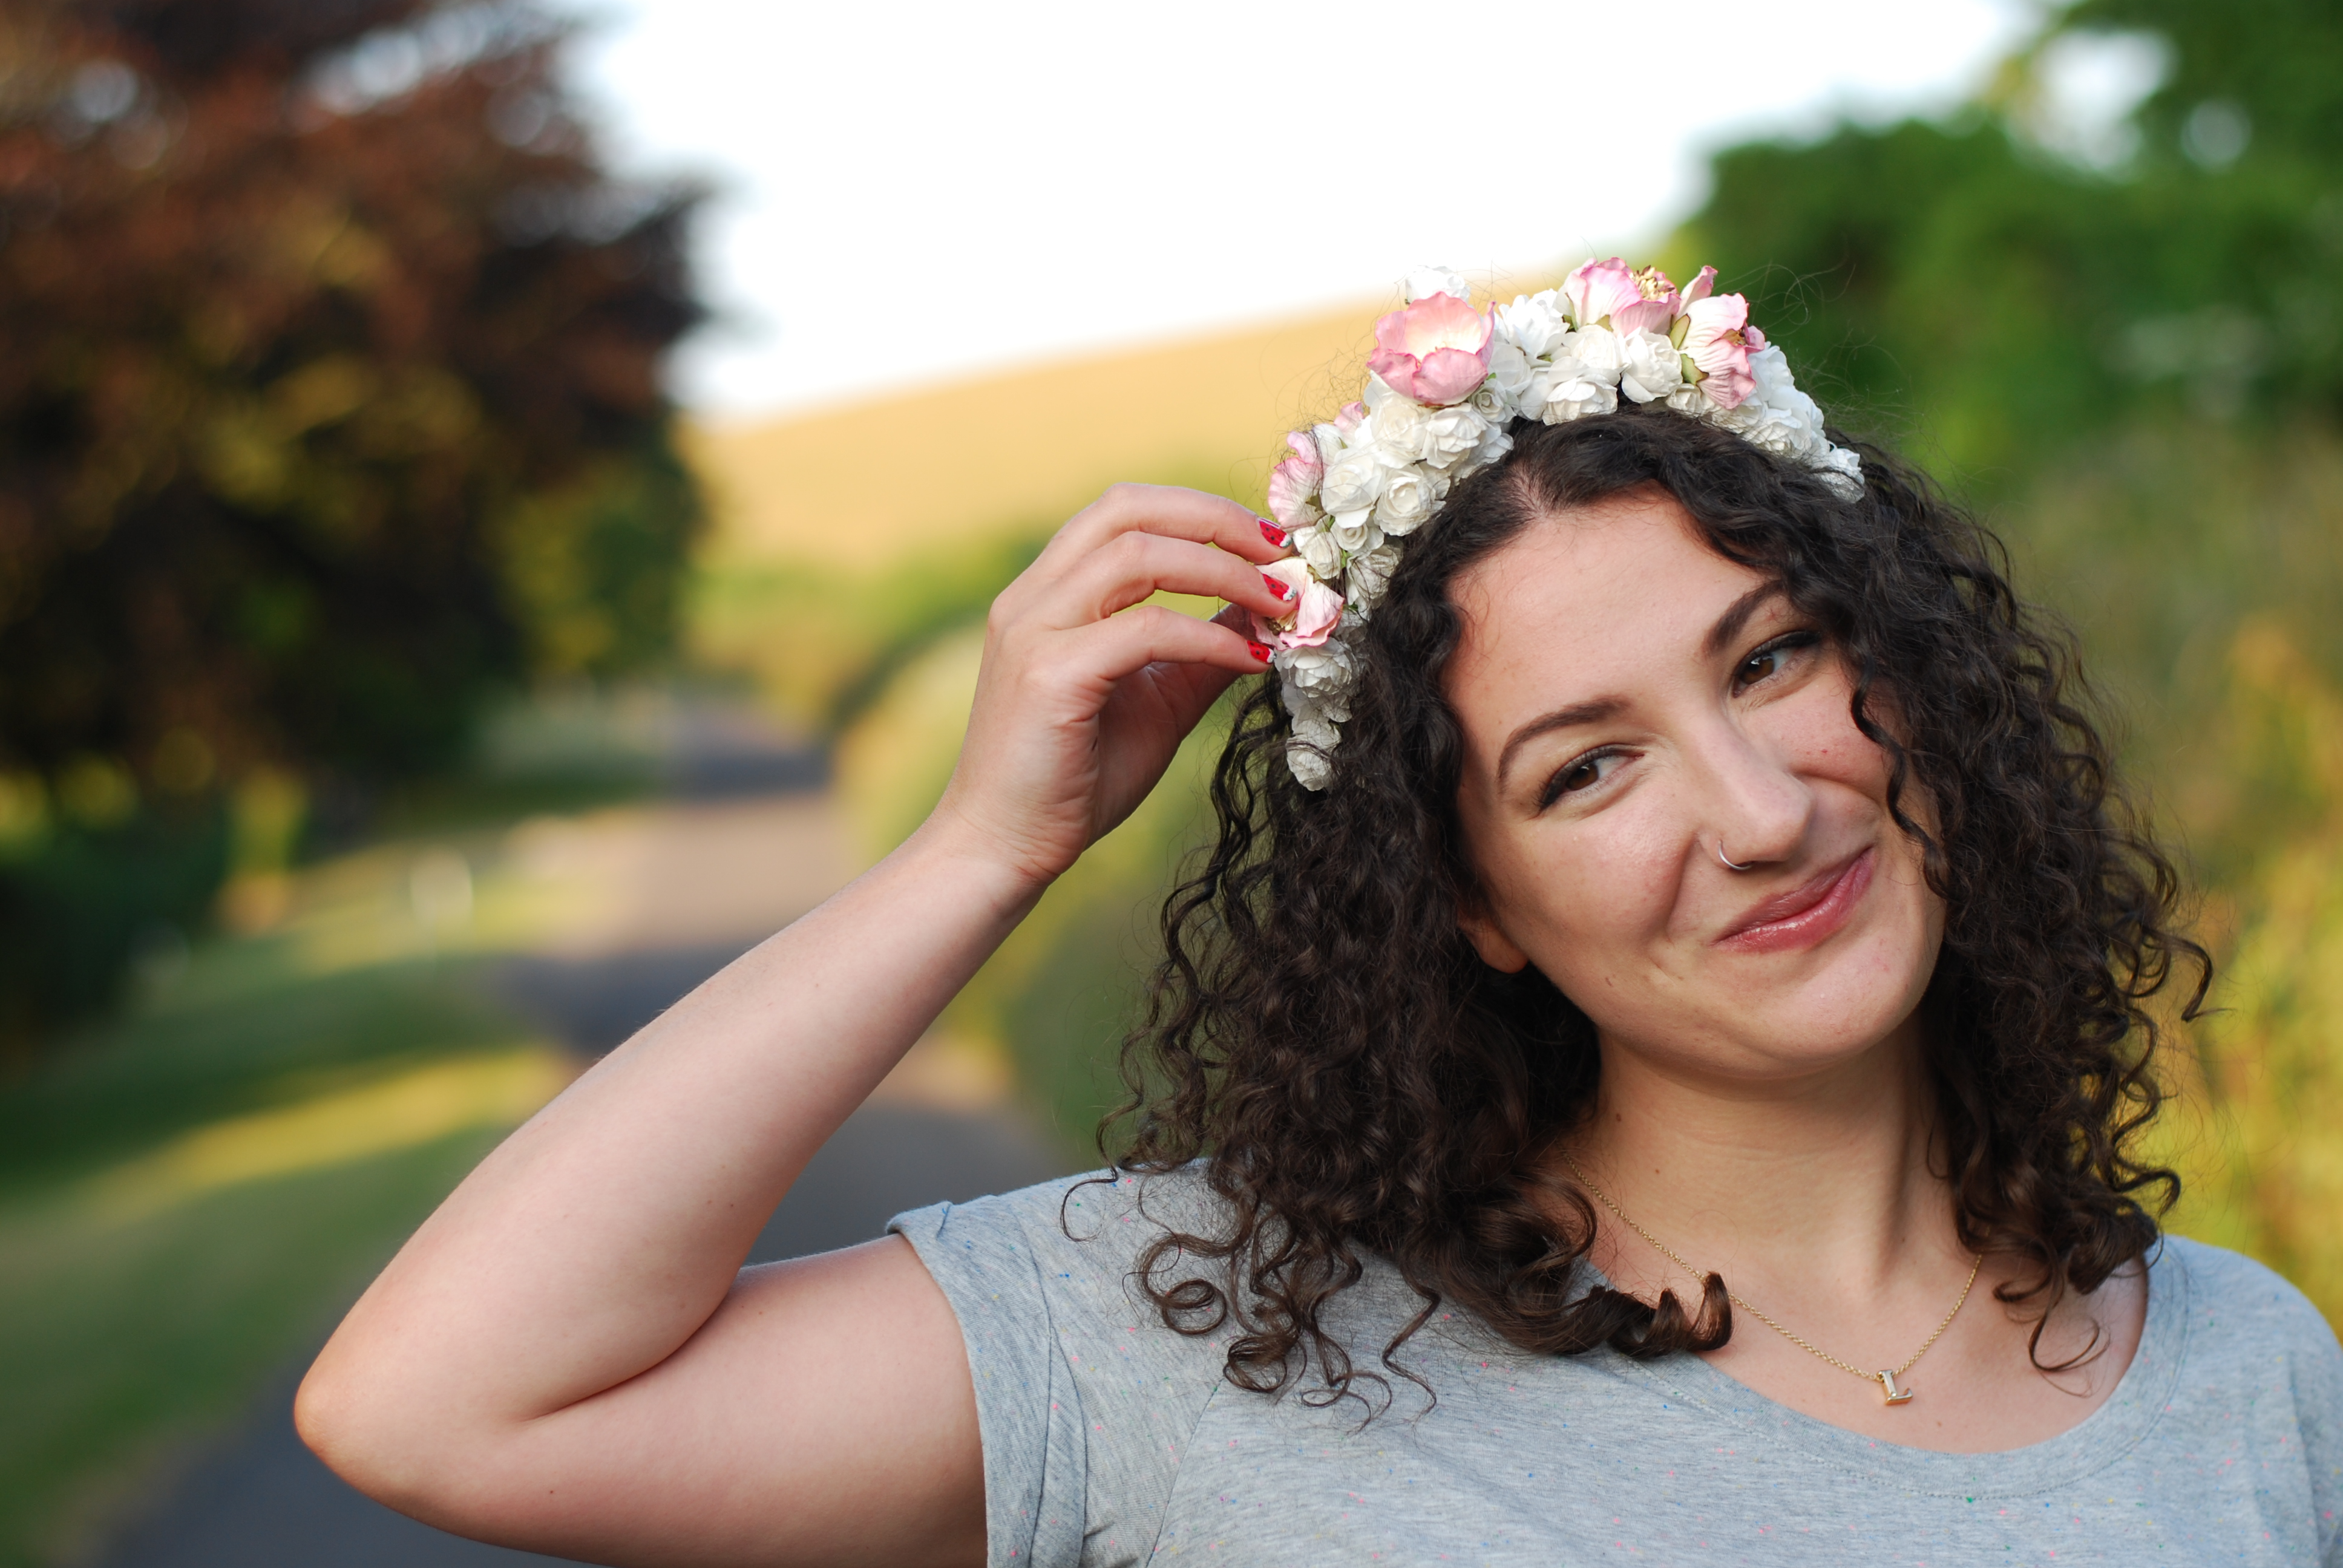 chambray and curls curly hair floral crown smiling girl